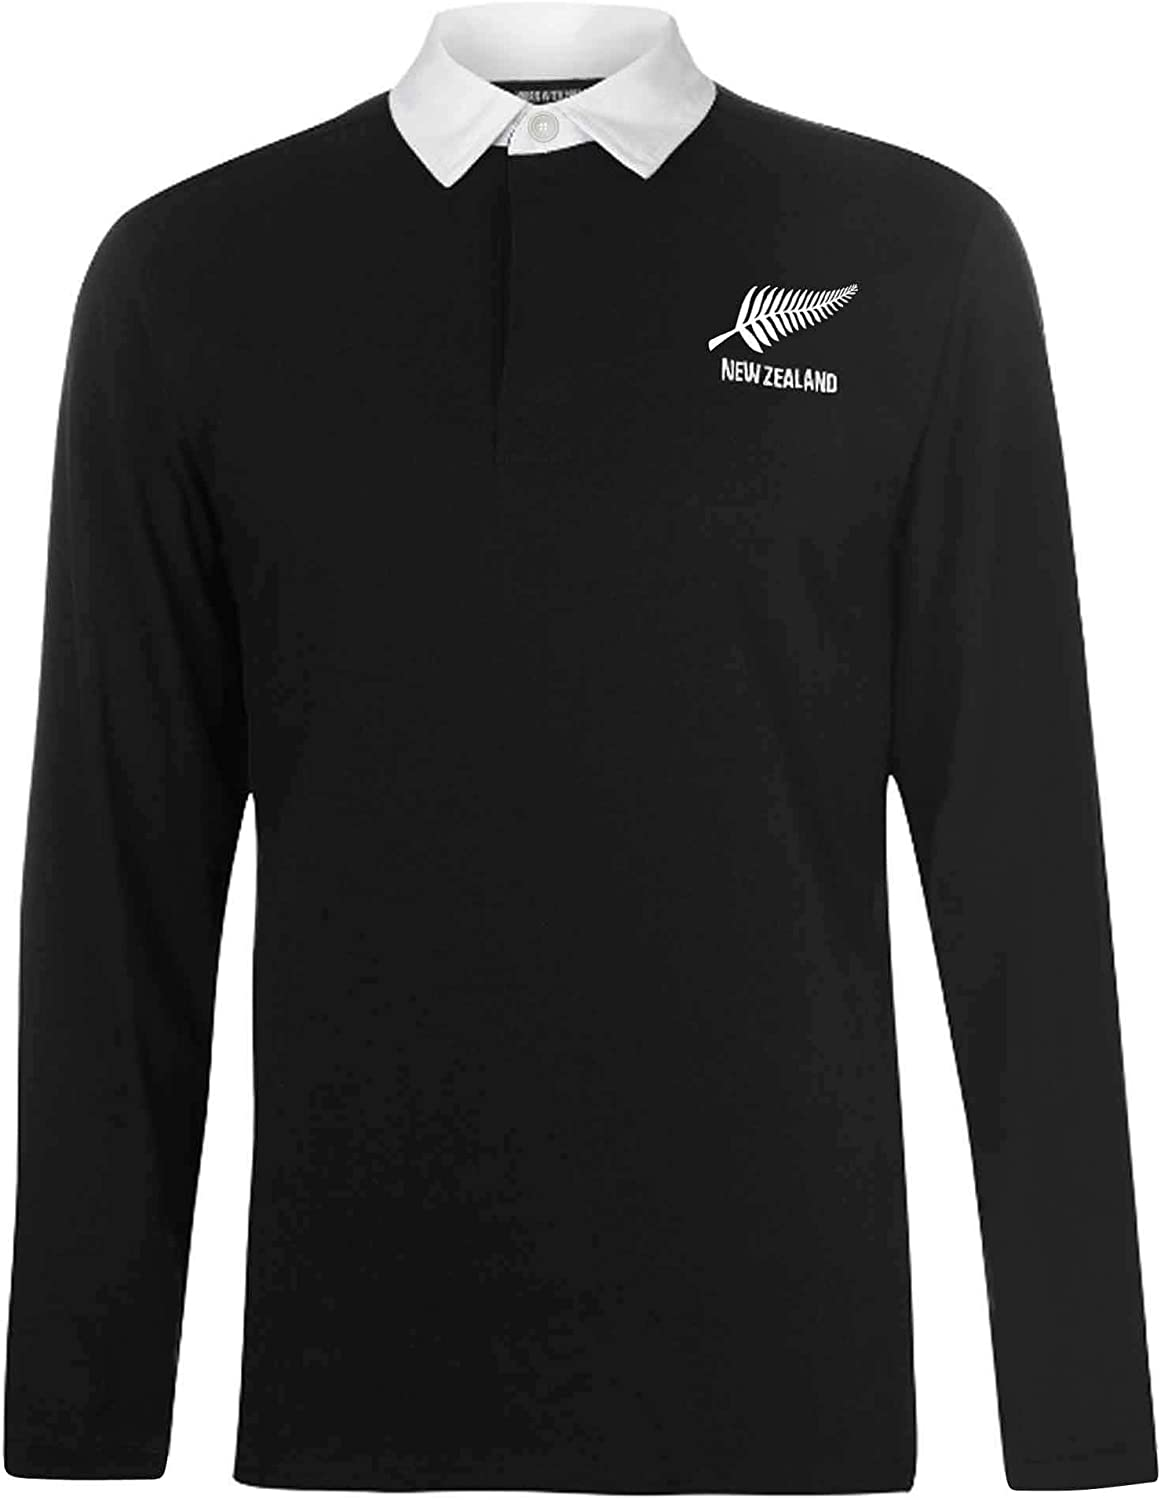 New Zealand Camiseta de Rugby de Manga Larga para Adultos Zelanda ...